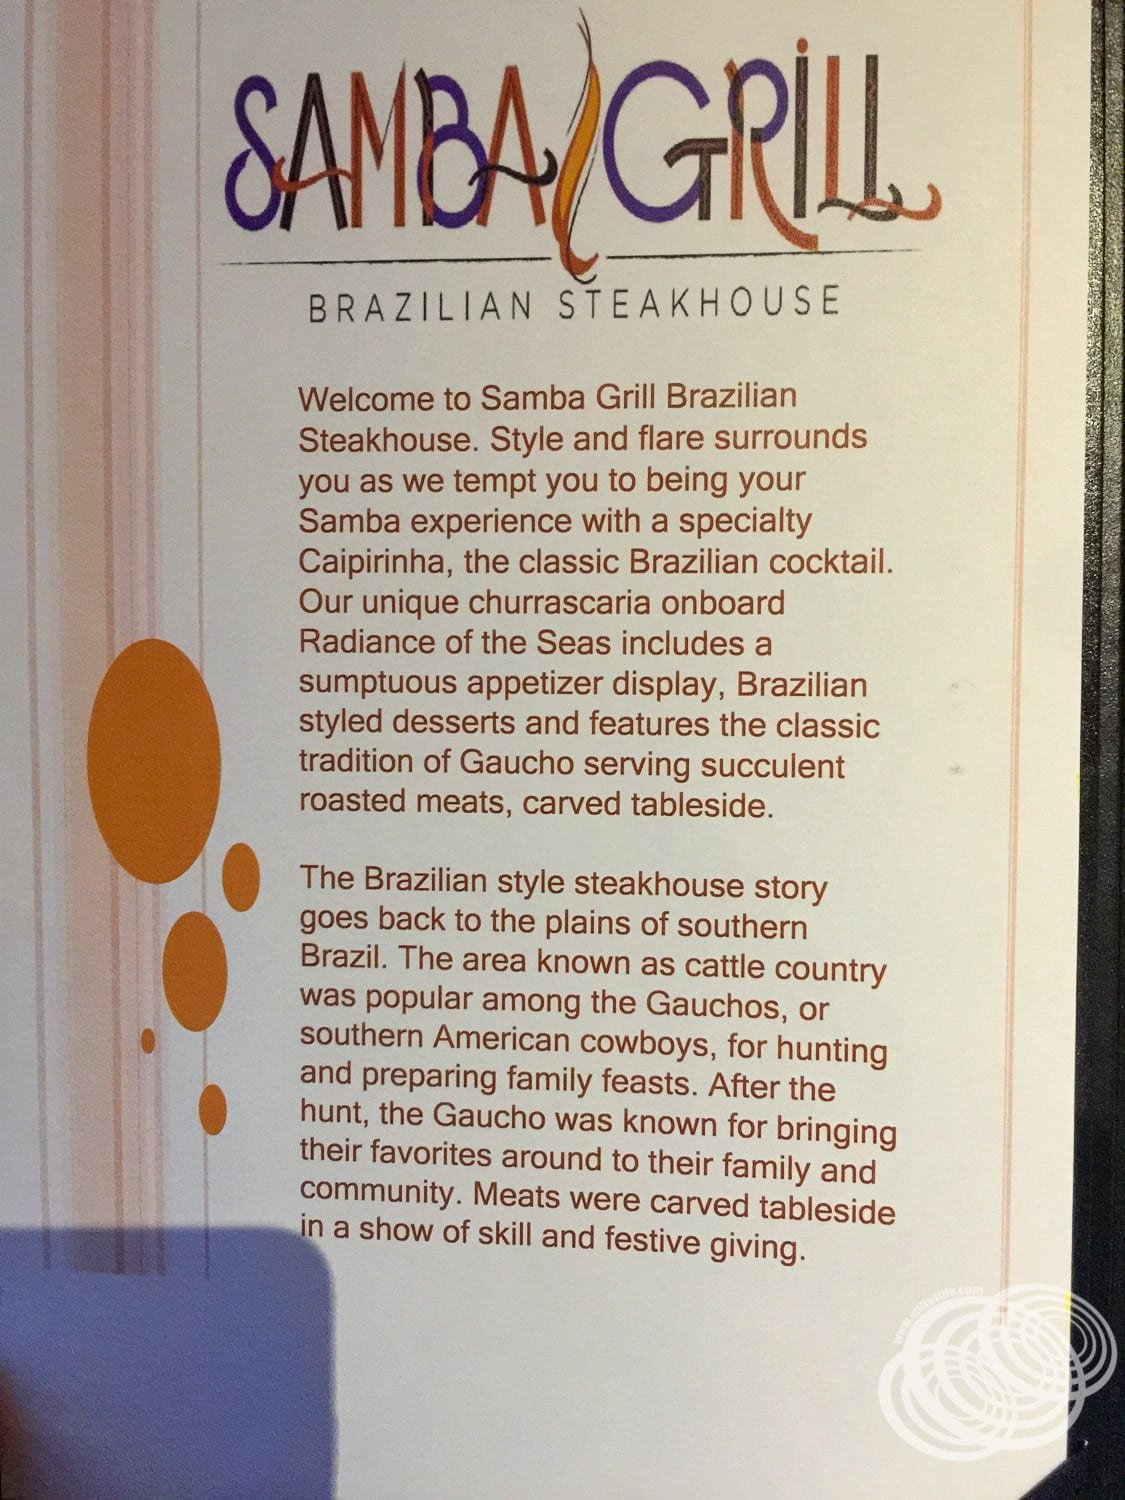 About Samba Grill - From the men